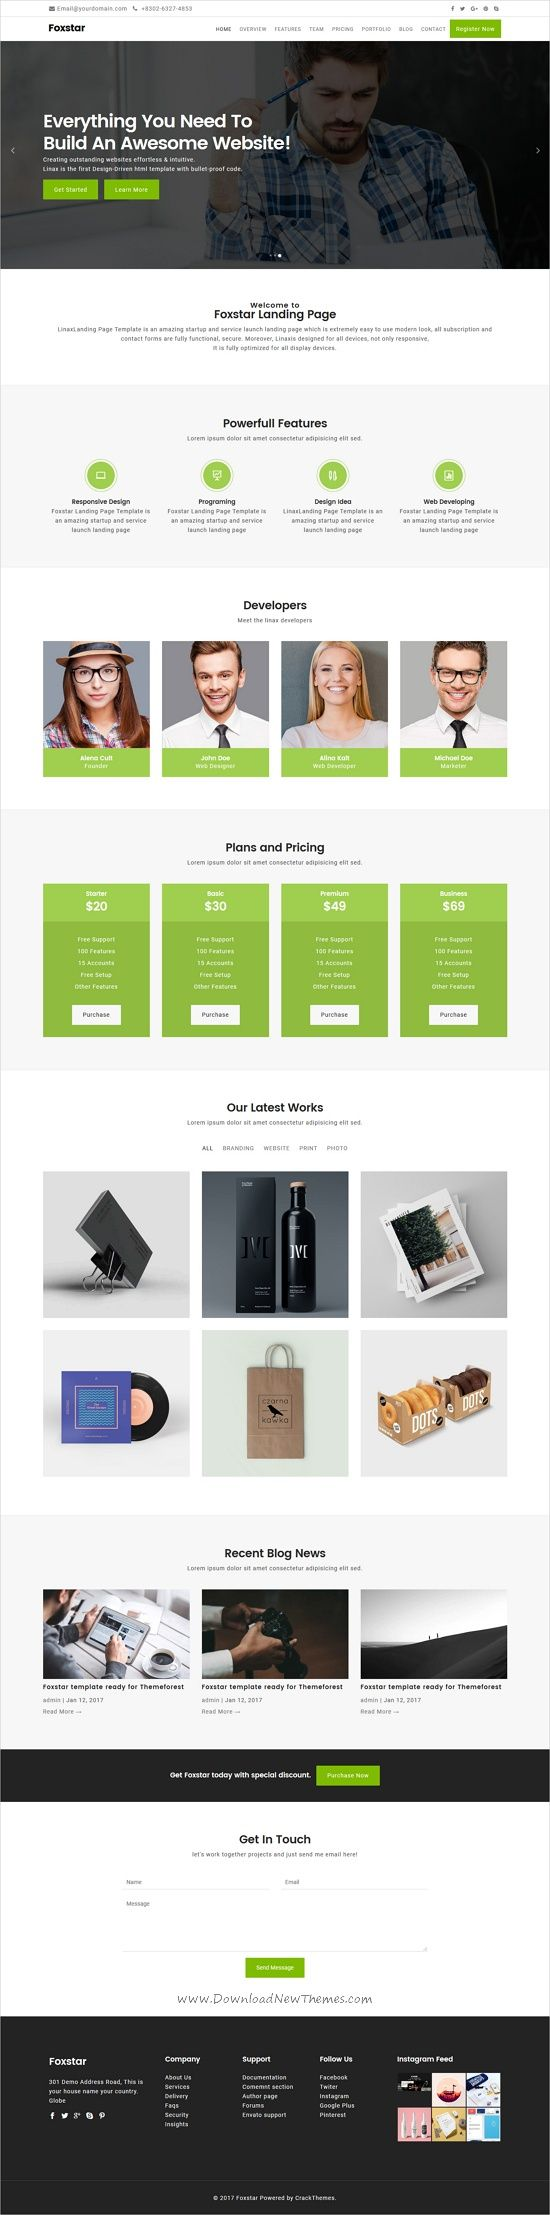 Foxstar is clean & professional design responsive HTML #bootstrap template for #corporate stunning website with 50+ niche homepage layouts download now➩ https://themeforest.net/item/foxstar-multipurpose-landing-page-pack-with-page-builder/19761185?ref=Datasata